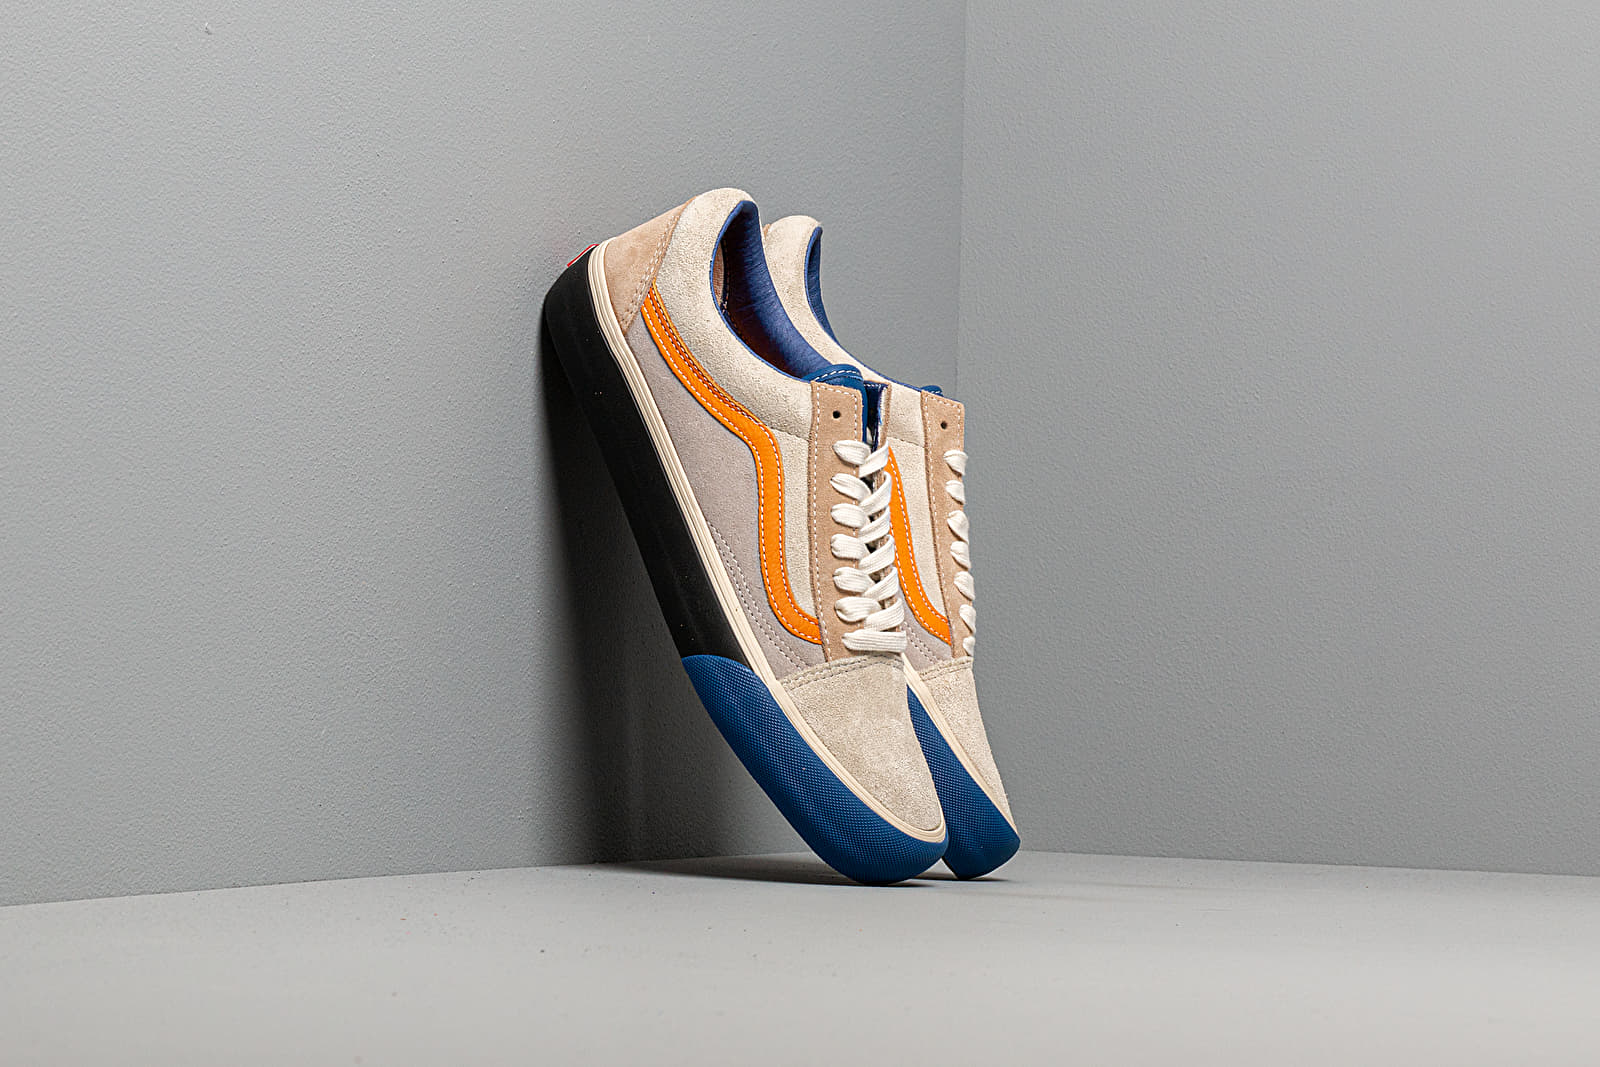 Buty męskie Vans Old Skool VLT LX (Suede/ Leather) True Blue/ Candied Ginger